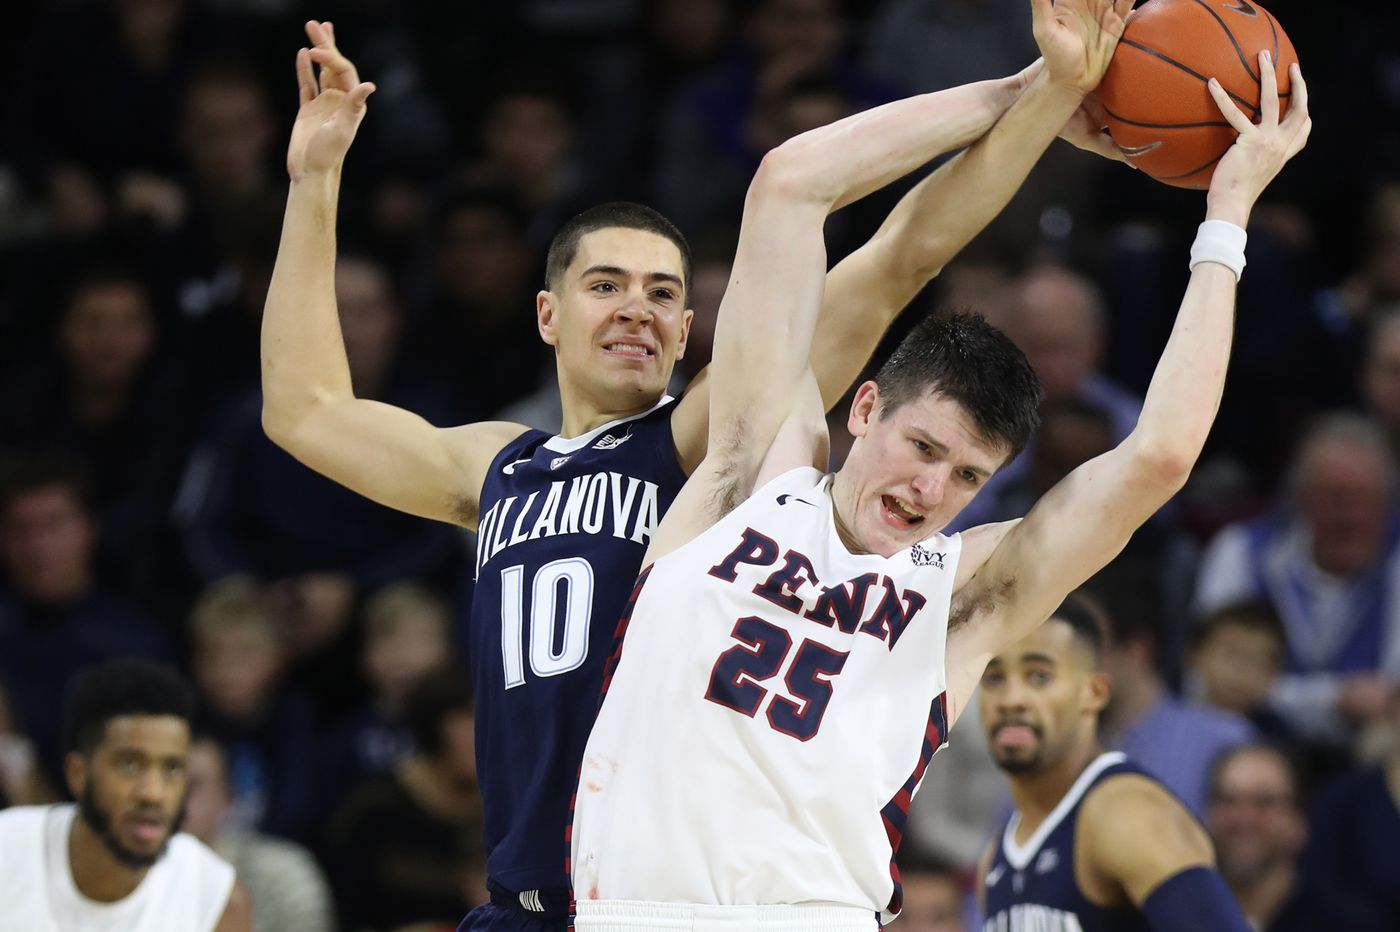 Penn can win Big 5 title outright with win over St. Joseph's